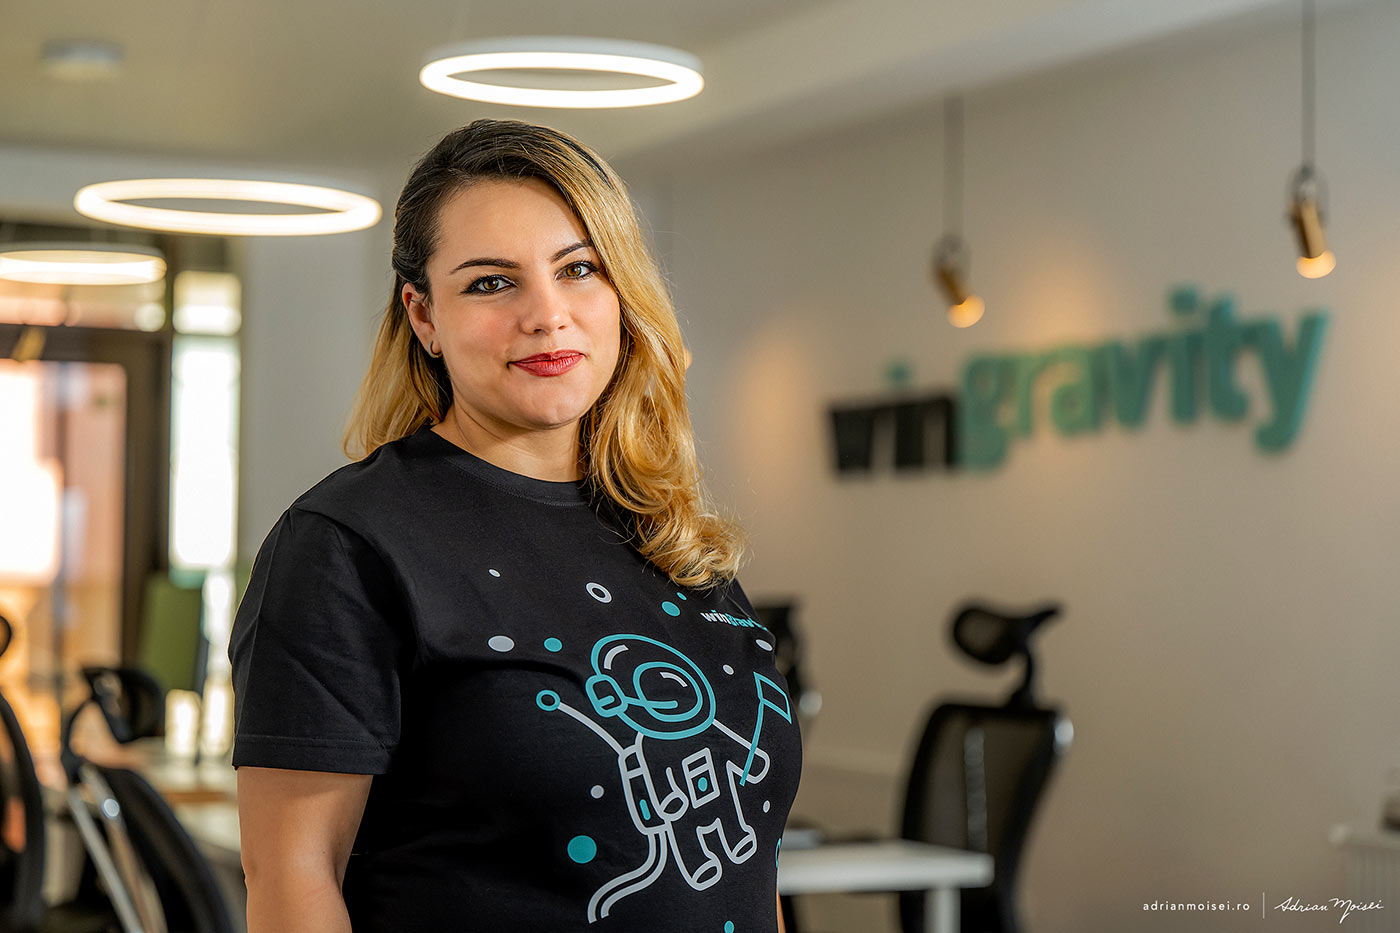 Daniela at Slashcore - matches top software developers with worlds most innovative companies